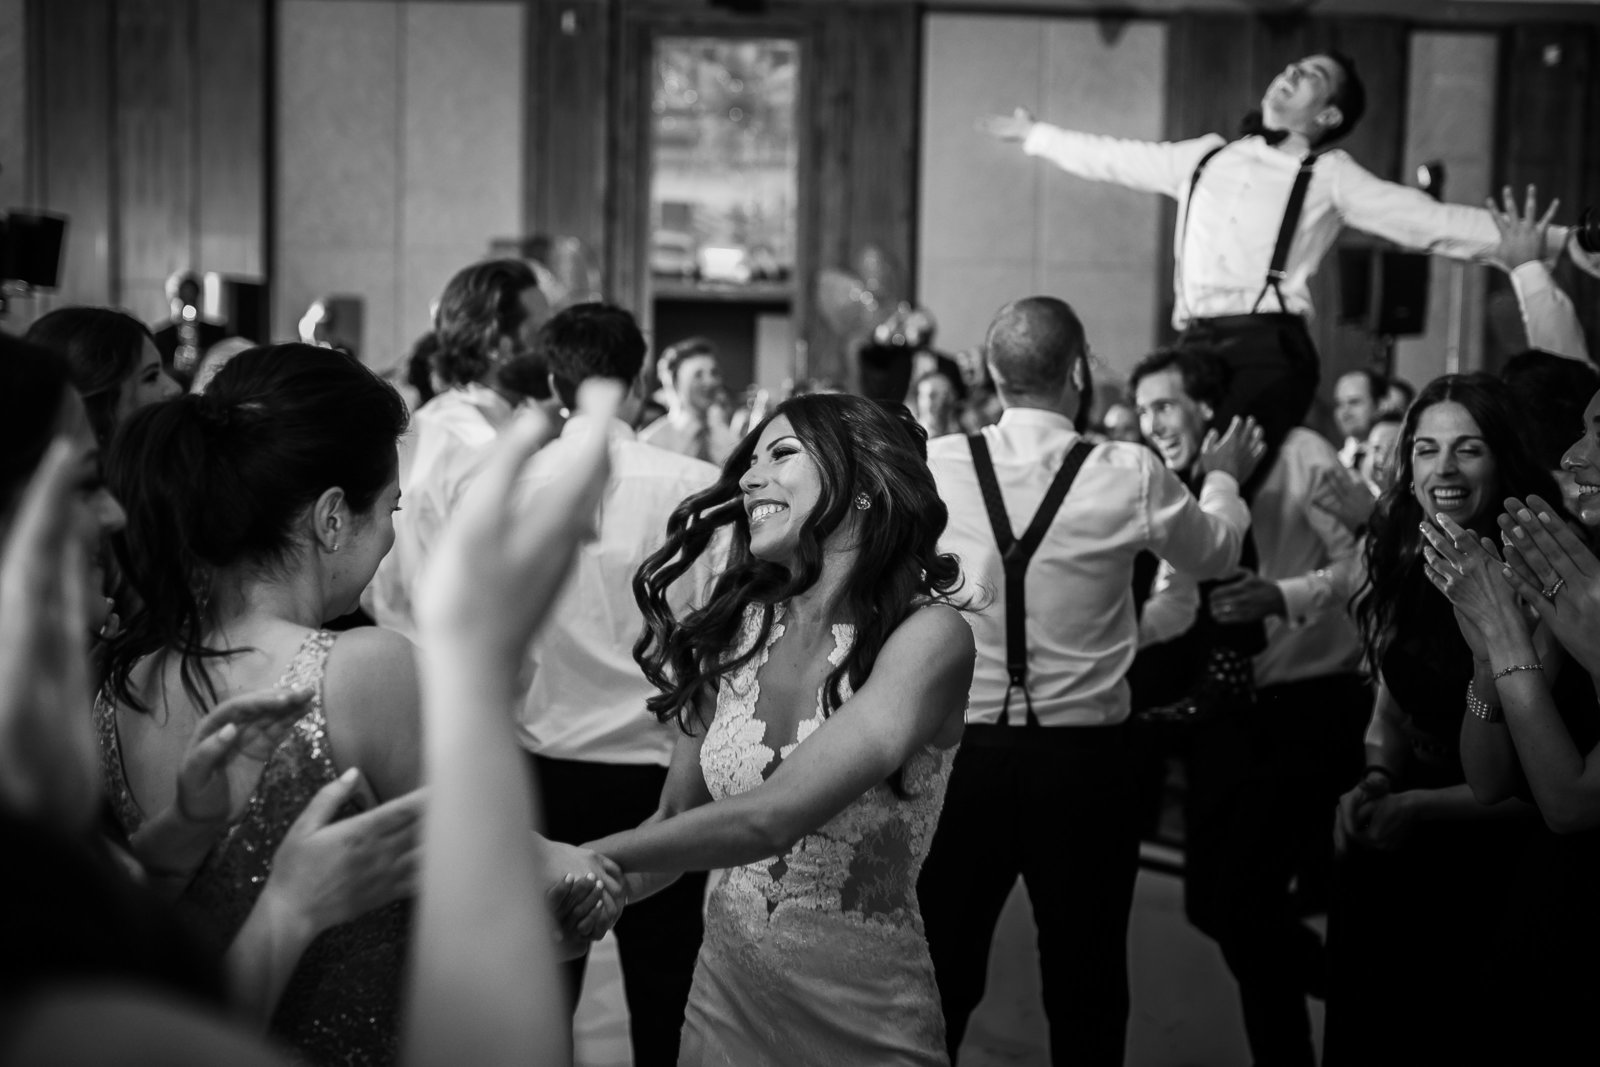 6 Dancing during reception at Ritz-Carlton wedding in downtown toronto by Photographers Luminous Weddings